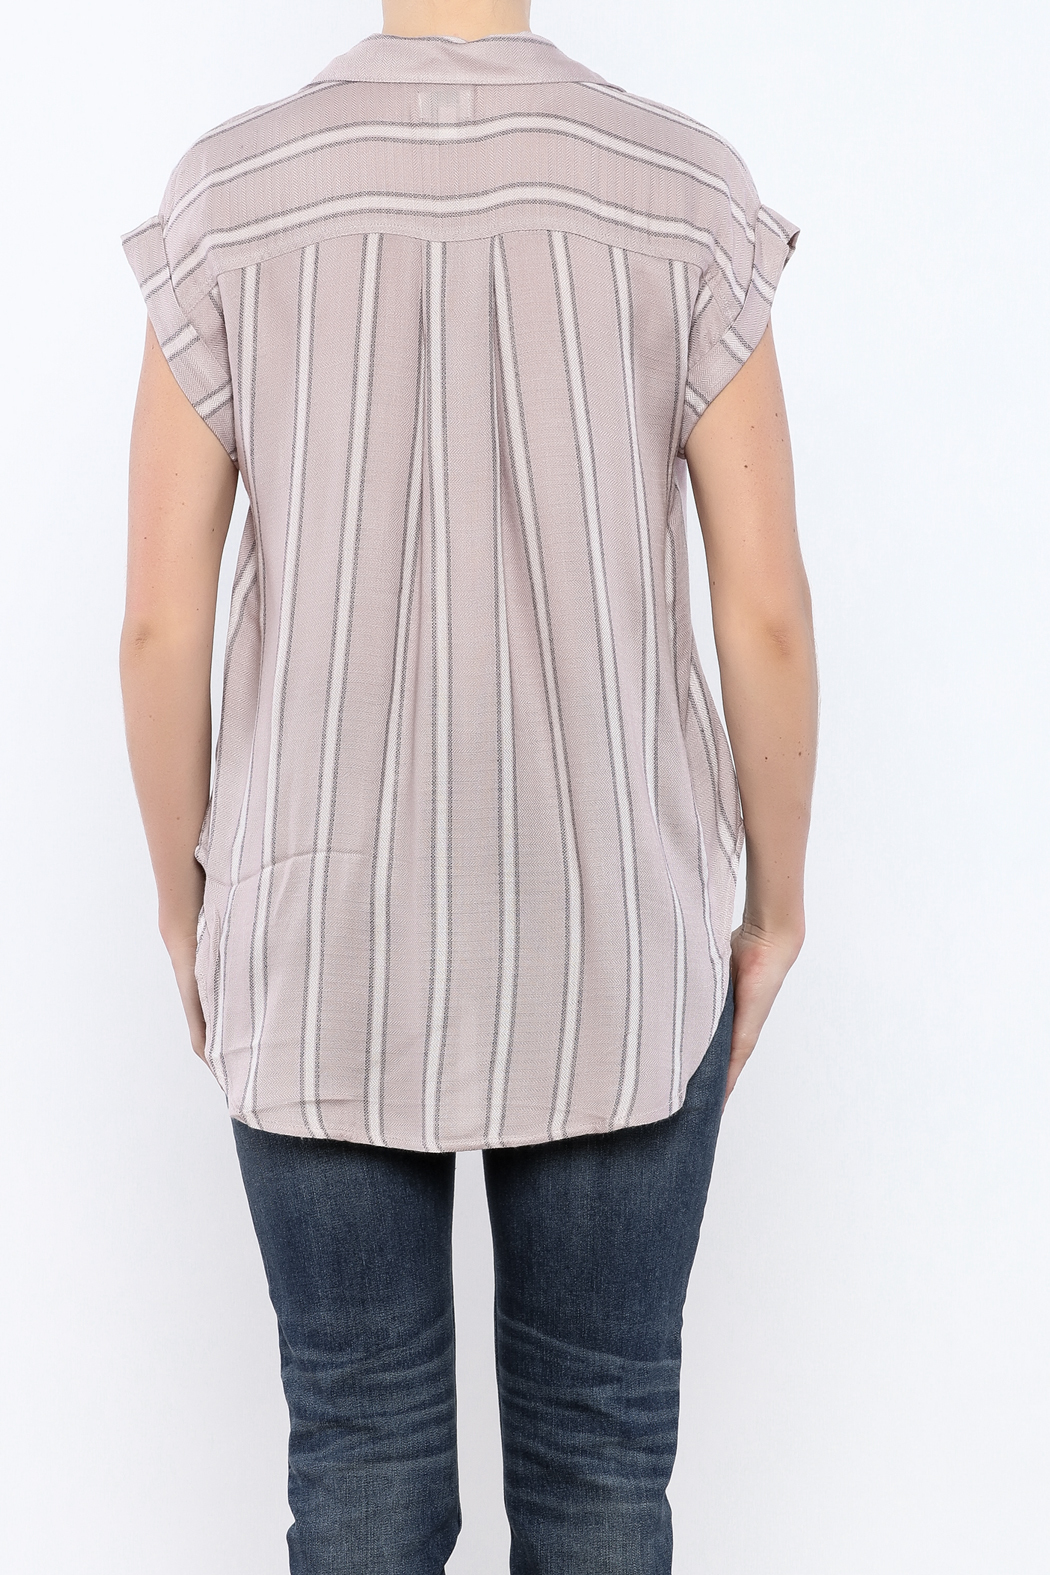 Sneak Peek Striped Button Down Hi-Lo Top - Back Cropped Image